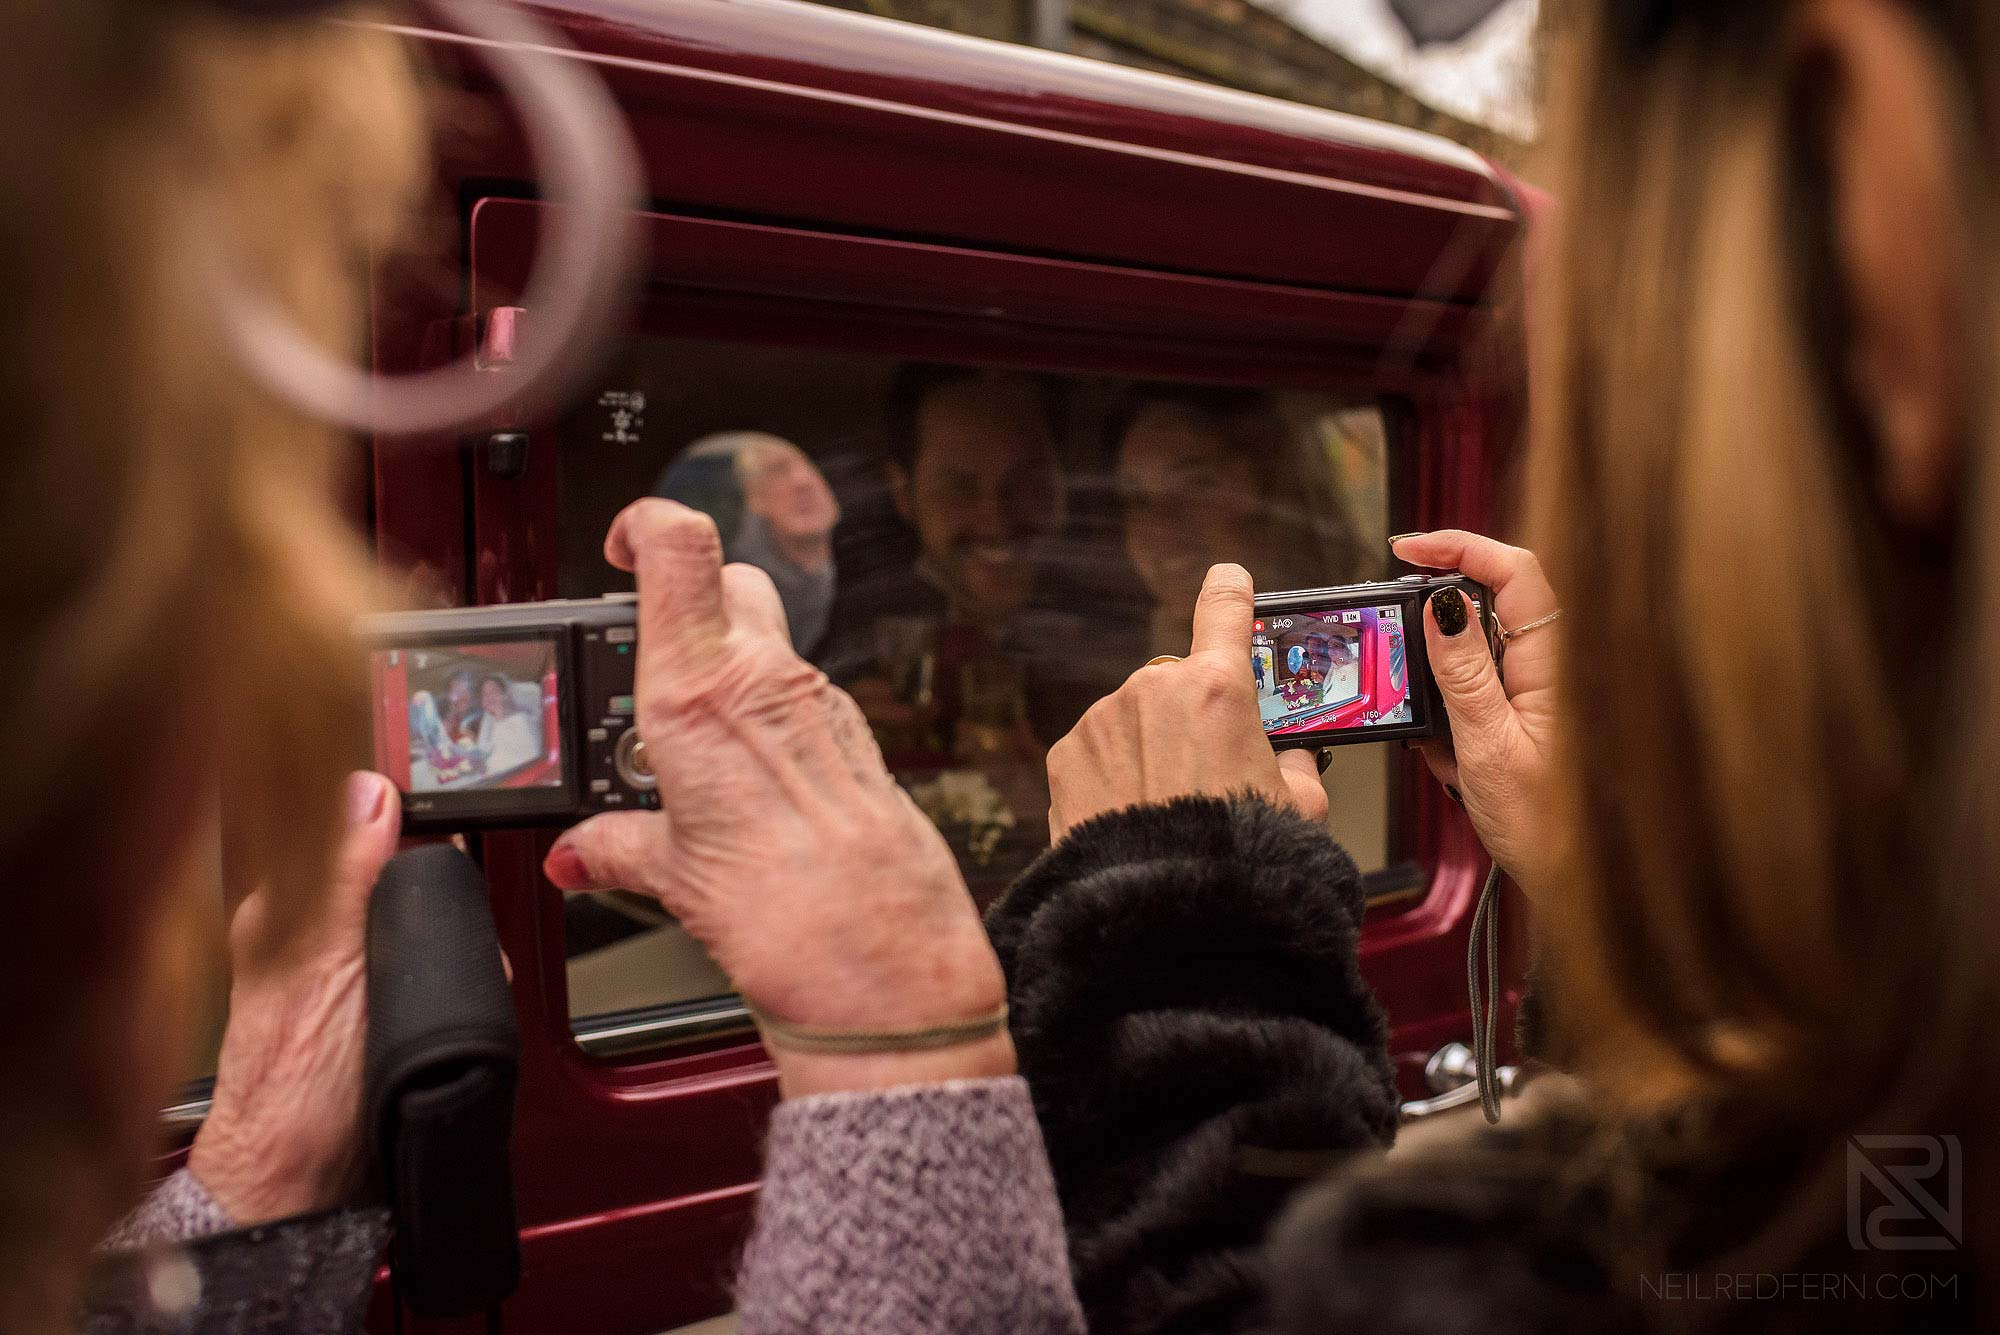 guests taking photograph of newlyweds in car